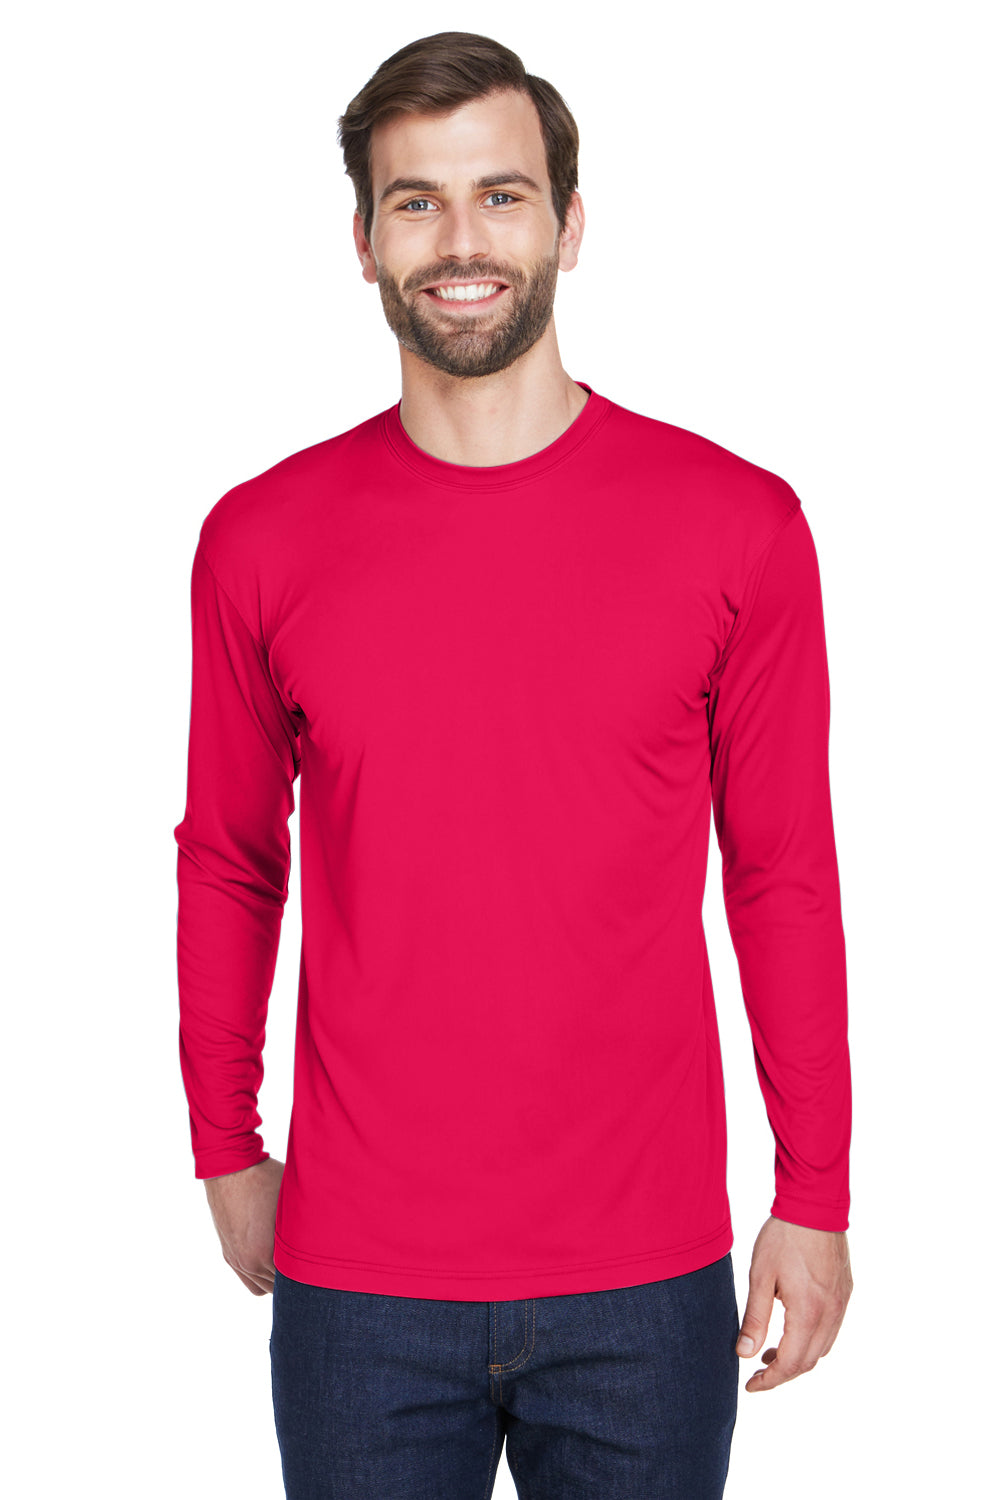 UltraClub 8422 Mens Cool & Dry Performance Moisture Wicking Long Sleeve Crewneck T-Shirt Red Front